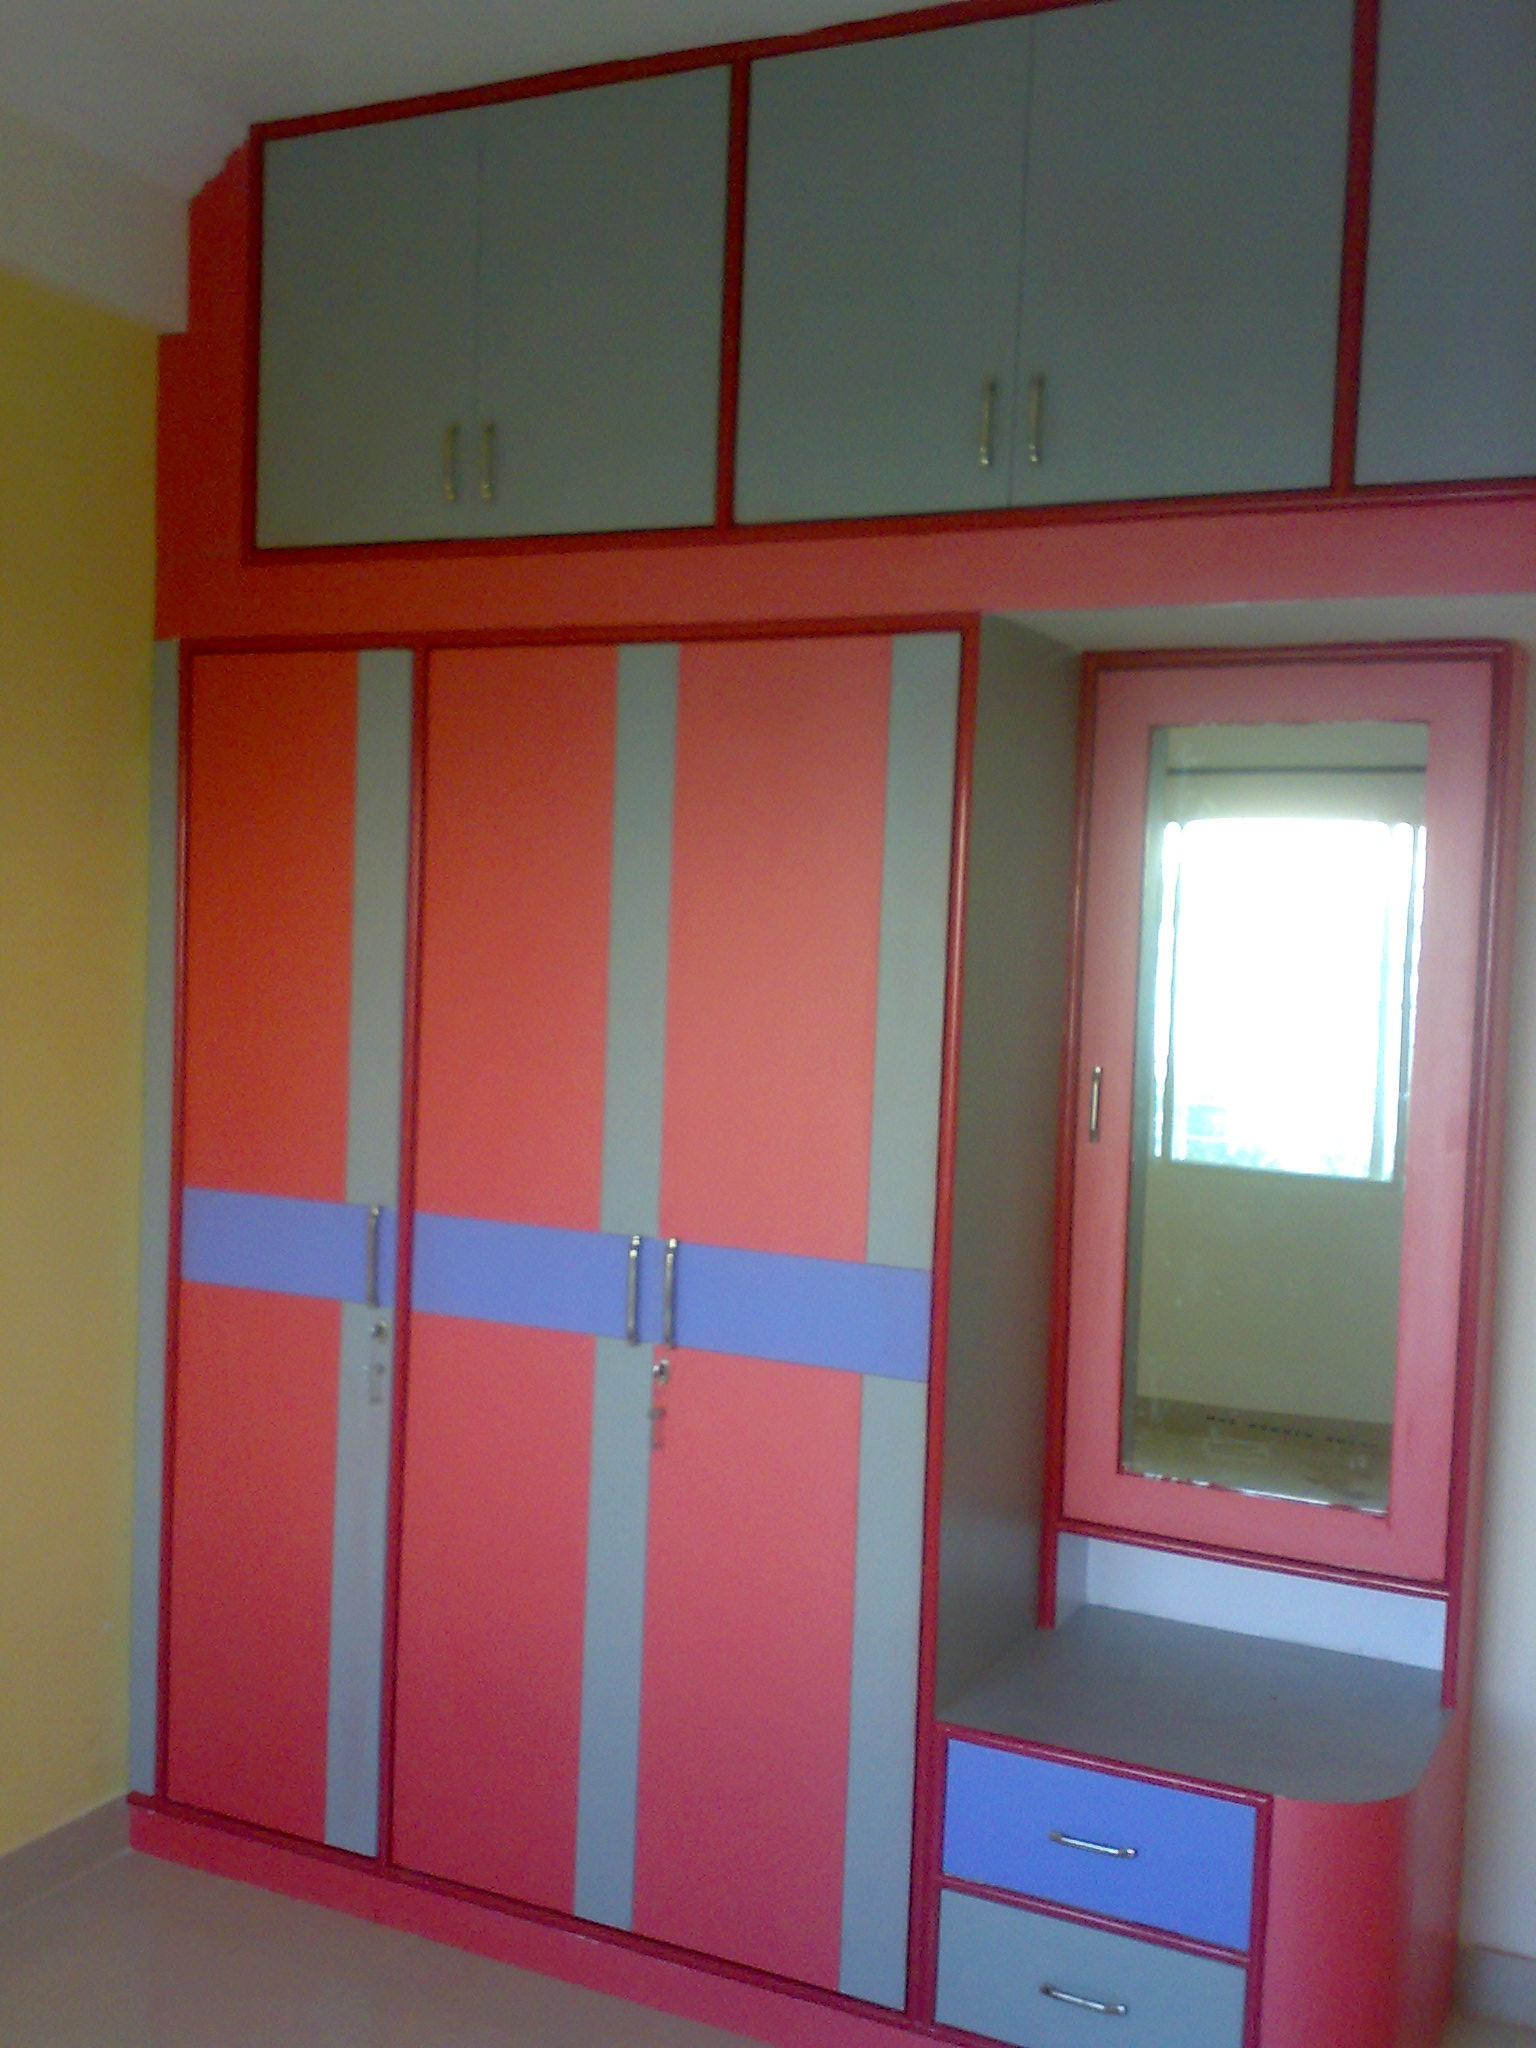 Bedroom Wardrobe Design Gharexpert: design wardrobe for bedroom